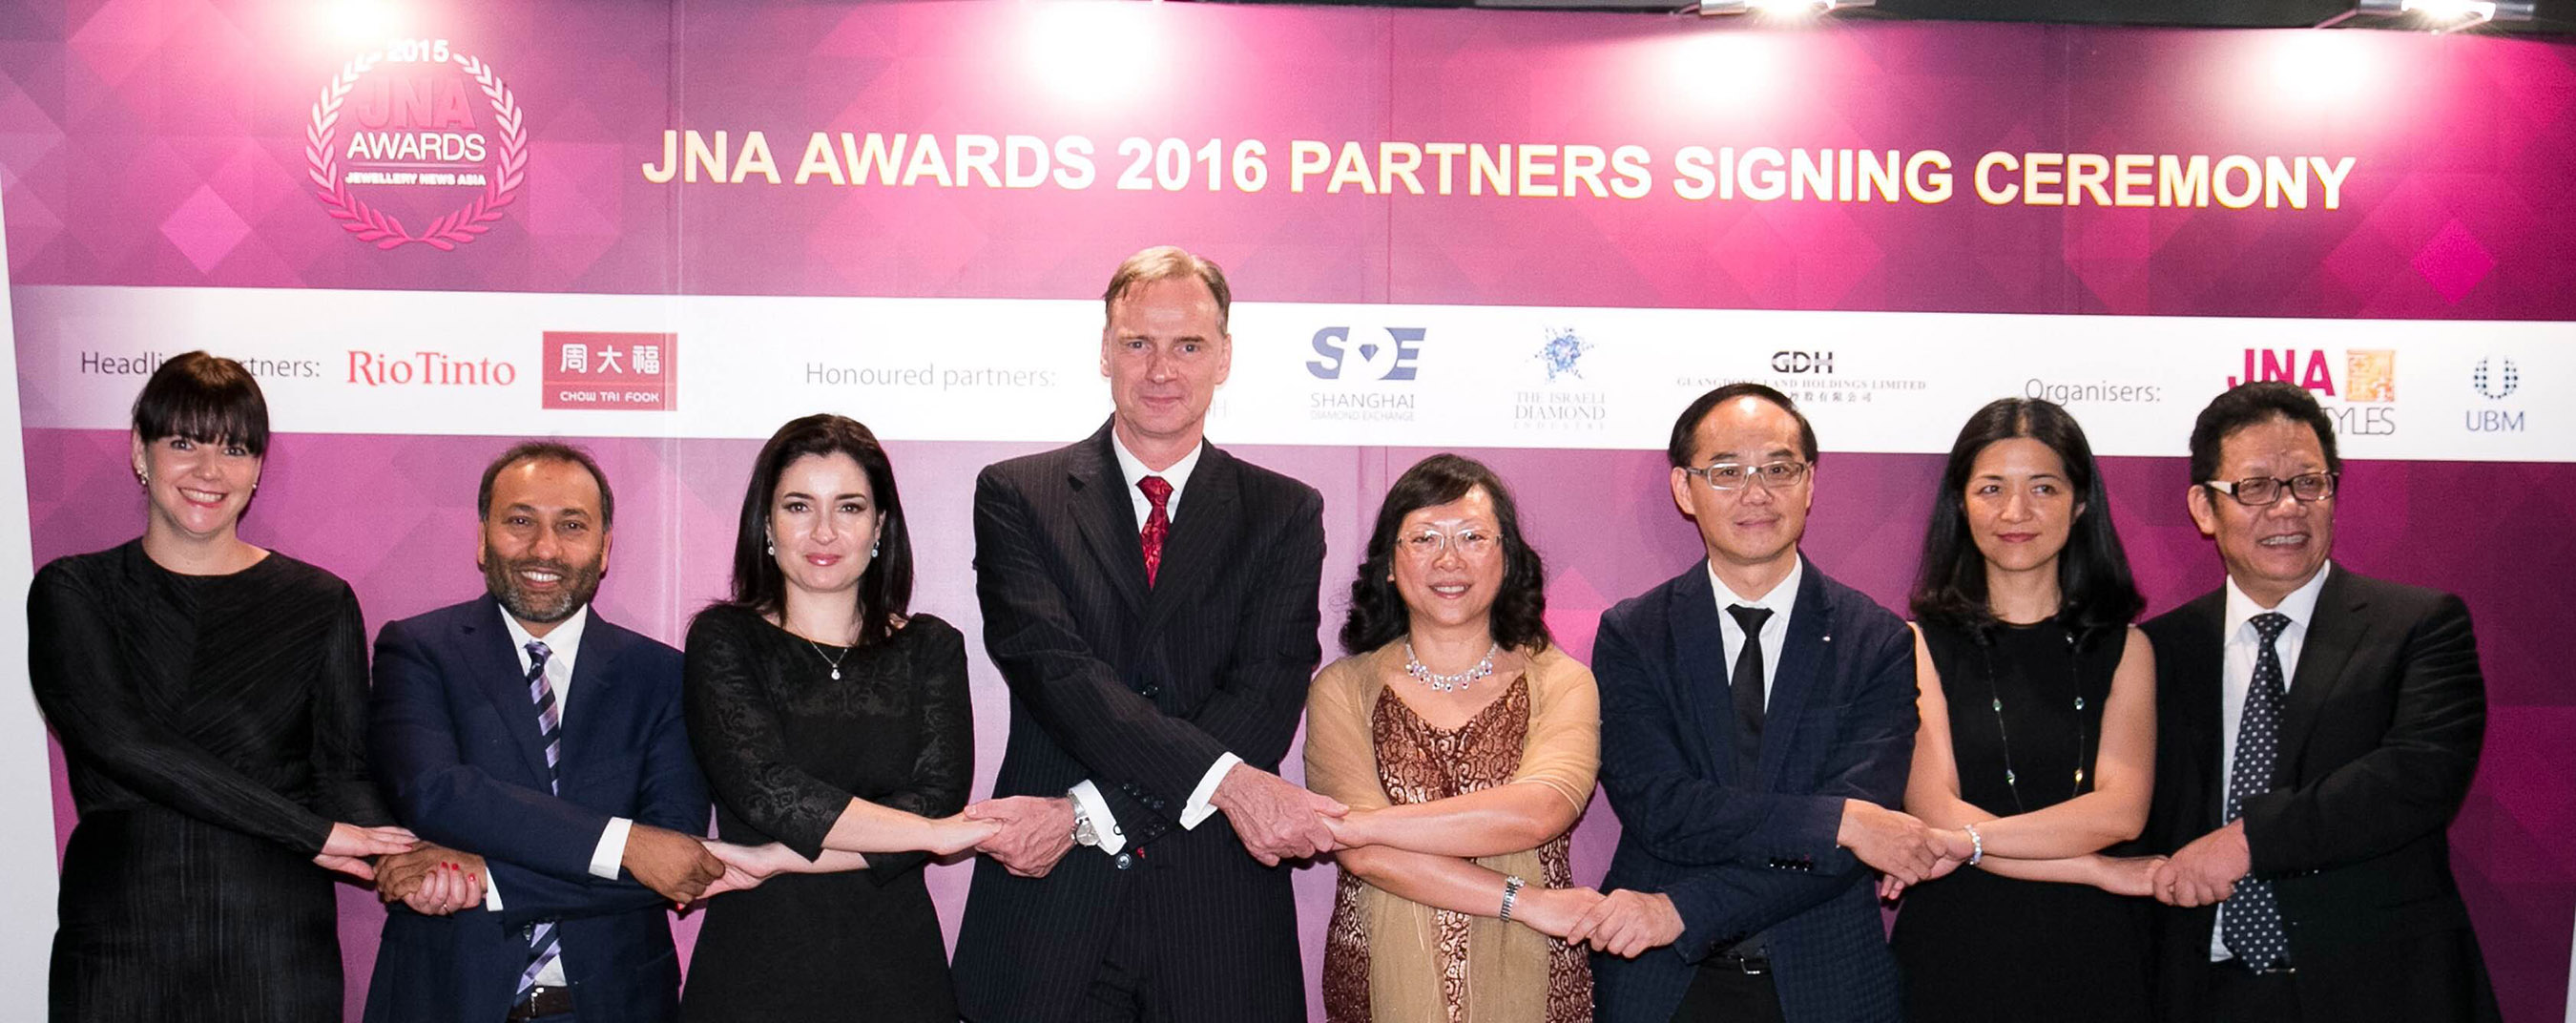 Partners join hands in welcoming the fifth edition of the JNA Awards